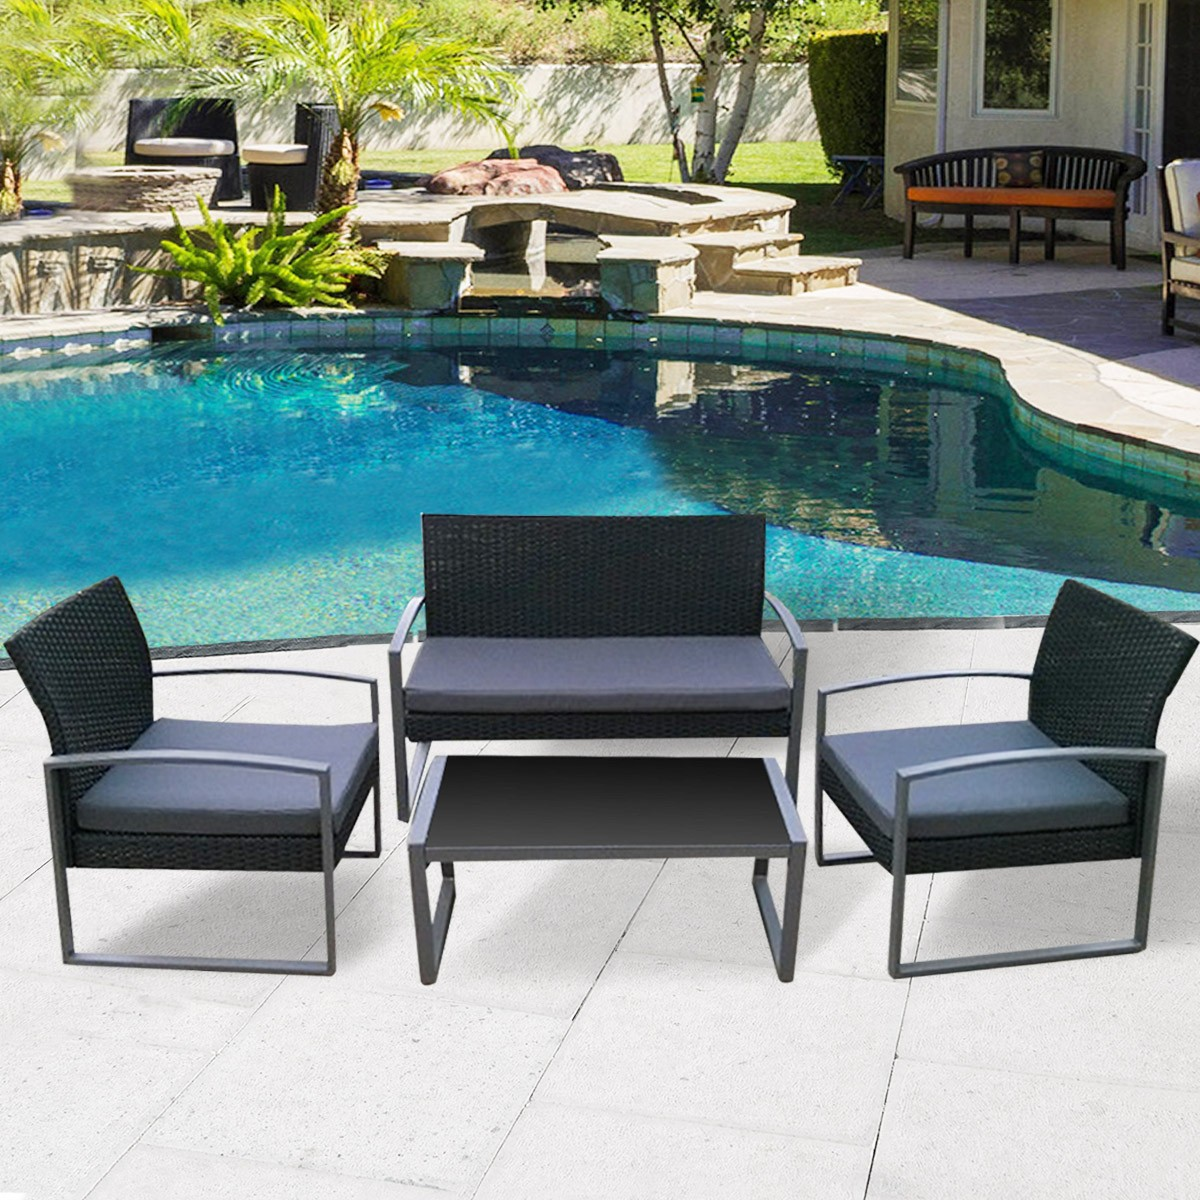 4 PCS Outdoor Patio Black Rattan Wicker Sofa Set Garden